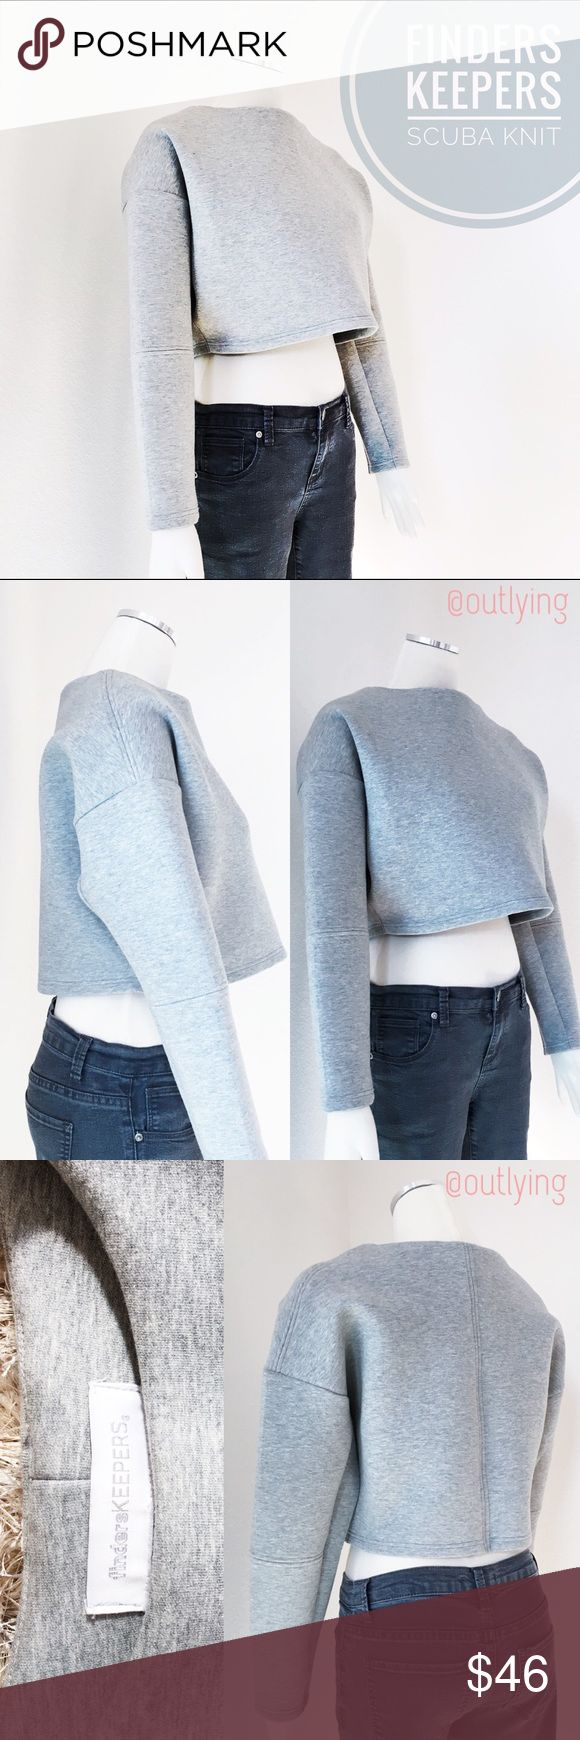 "FINDERSKEEPERS Scuba Knit Grey Crop Sweatshirt FINDERS KEEPERS THE LABEL Sample Size S Retail Price: $120 NWOT / Never Worn Length 16"" Bust 44"" Waist 36"" Structured scuba knit athleisure style, a la Balenciaga, pair with your fave high waisted skinnies or layer with a fitted lean tank underneath. Minimalist chic, forever modern. Finders Keepers the Label has evolved into one of the world's most sought after fashion labels for its effortlessly polished style. Since its inception in 2007 by…"